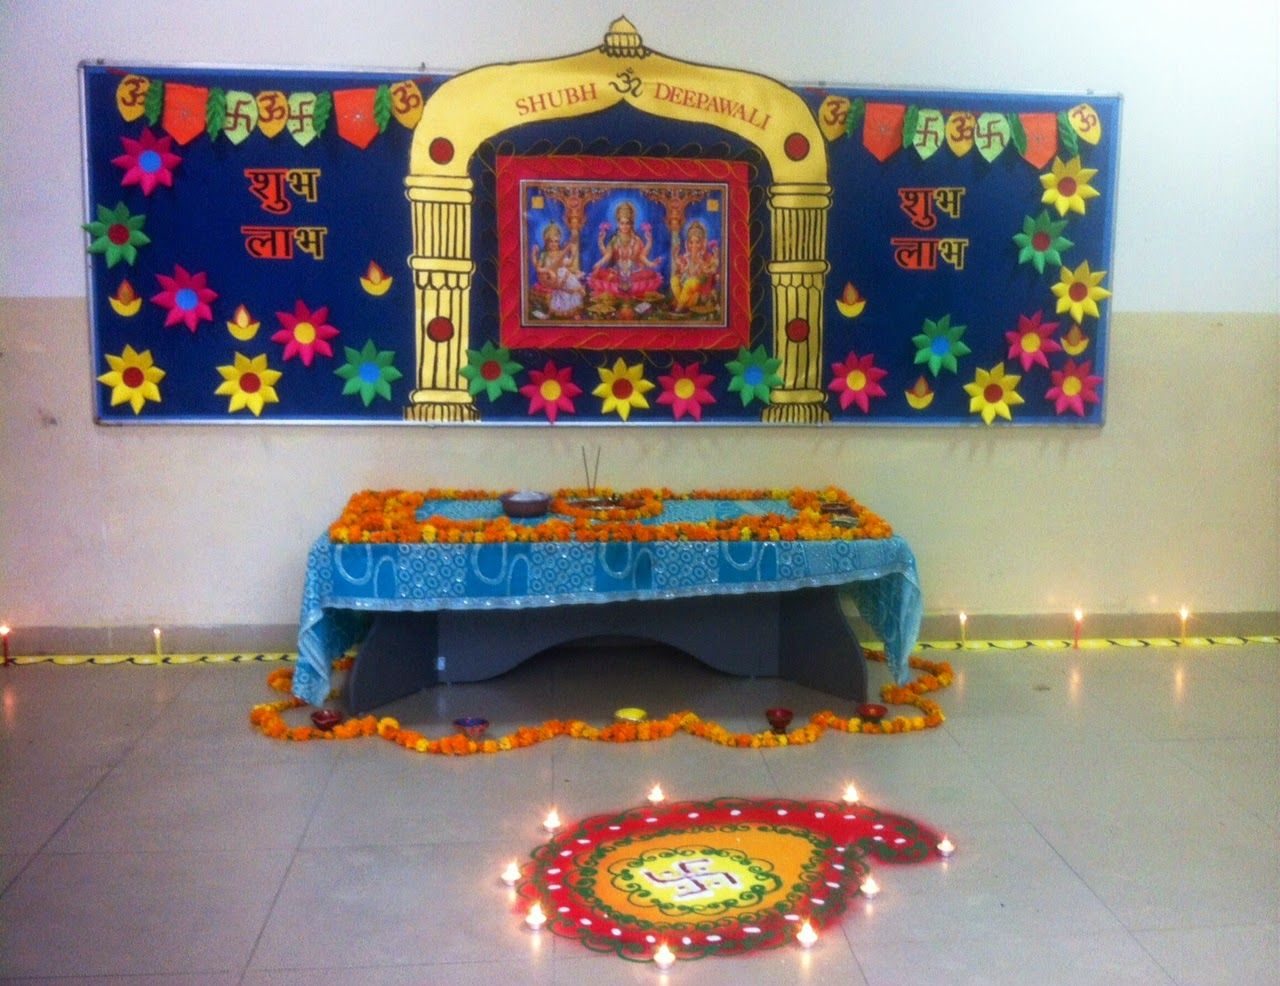 Art craft ideas and bulletin boards for elementary schools vegetable - Art Craft Ideas And Bulletin Boards For Elementary Schools Diwali Temple Decoration